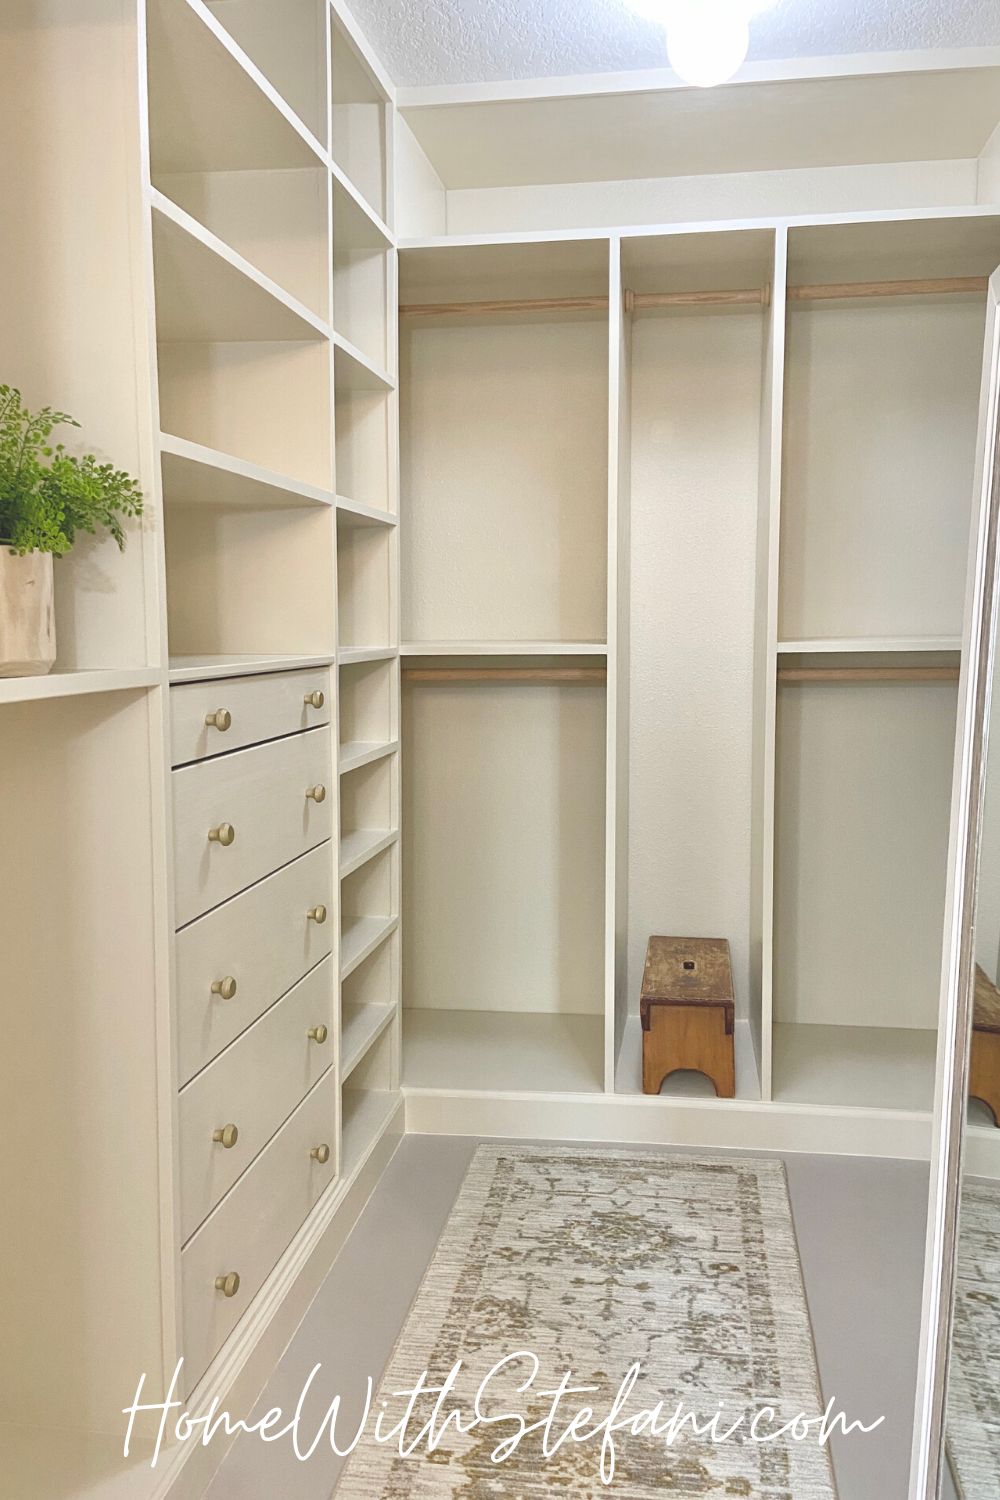 I gave our walk in closet a complete makeover on a budget with the help of an Ikea hack! #IkeaCloset #DIYCloset #DreamCloset #ClosetMakeover #DIYIkeaCloset